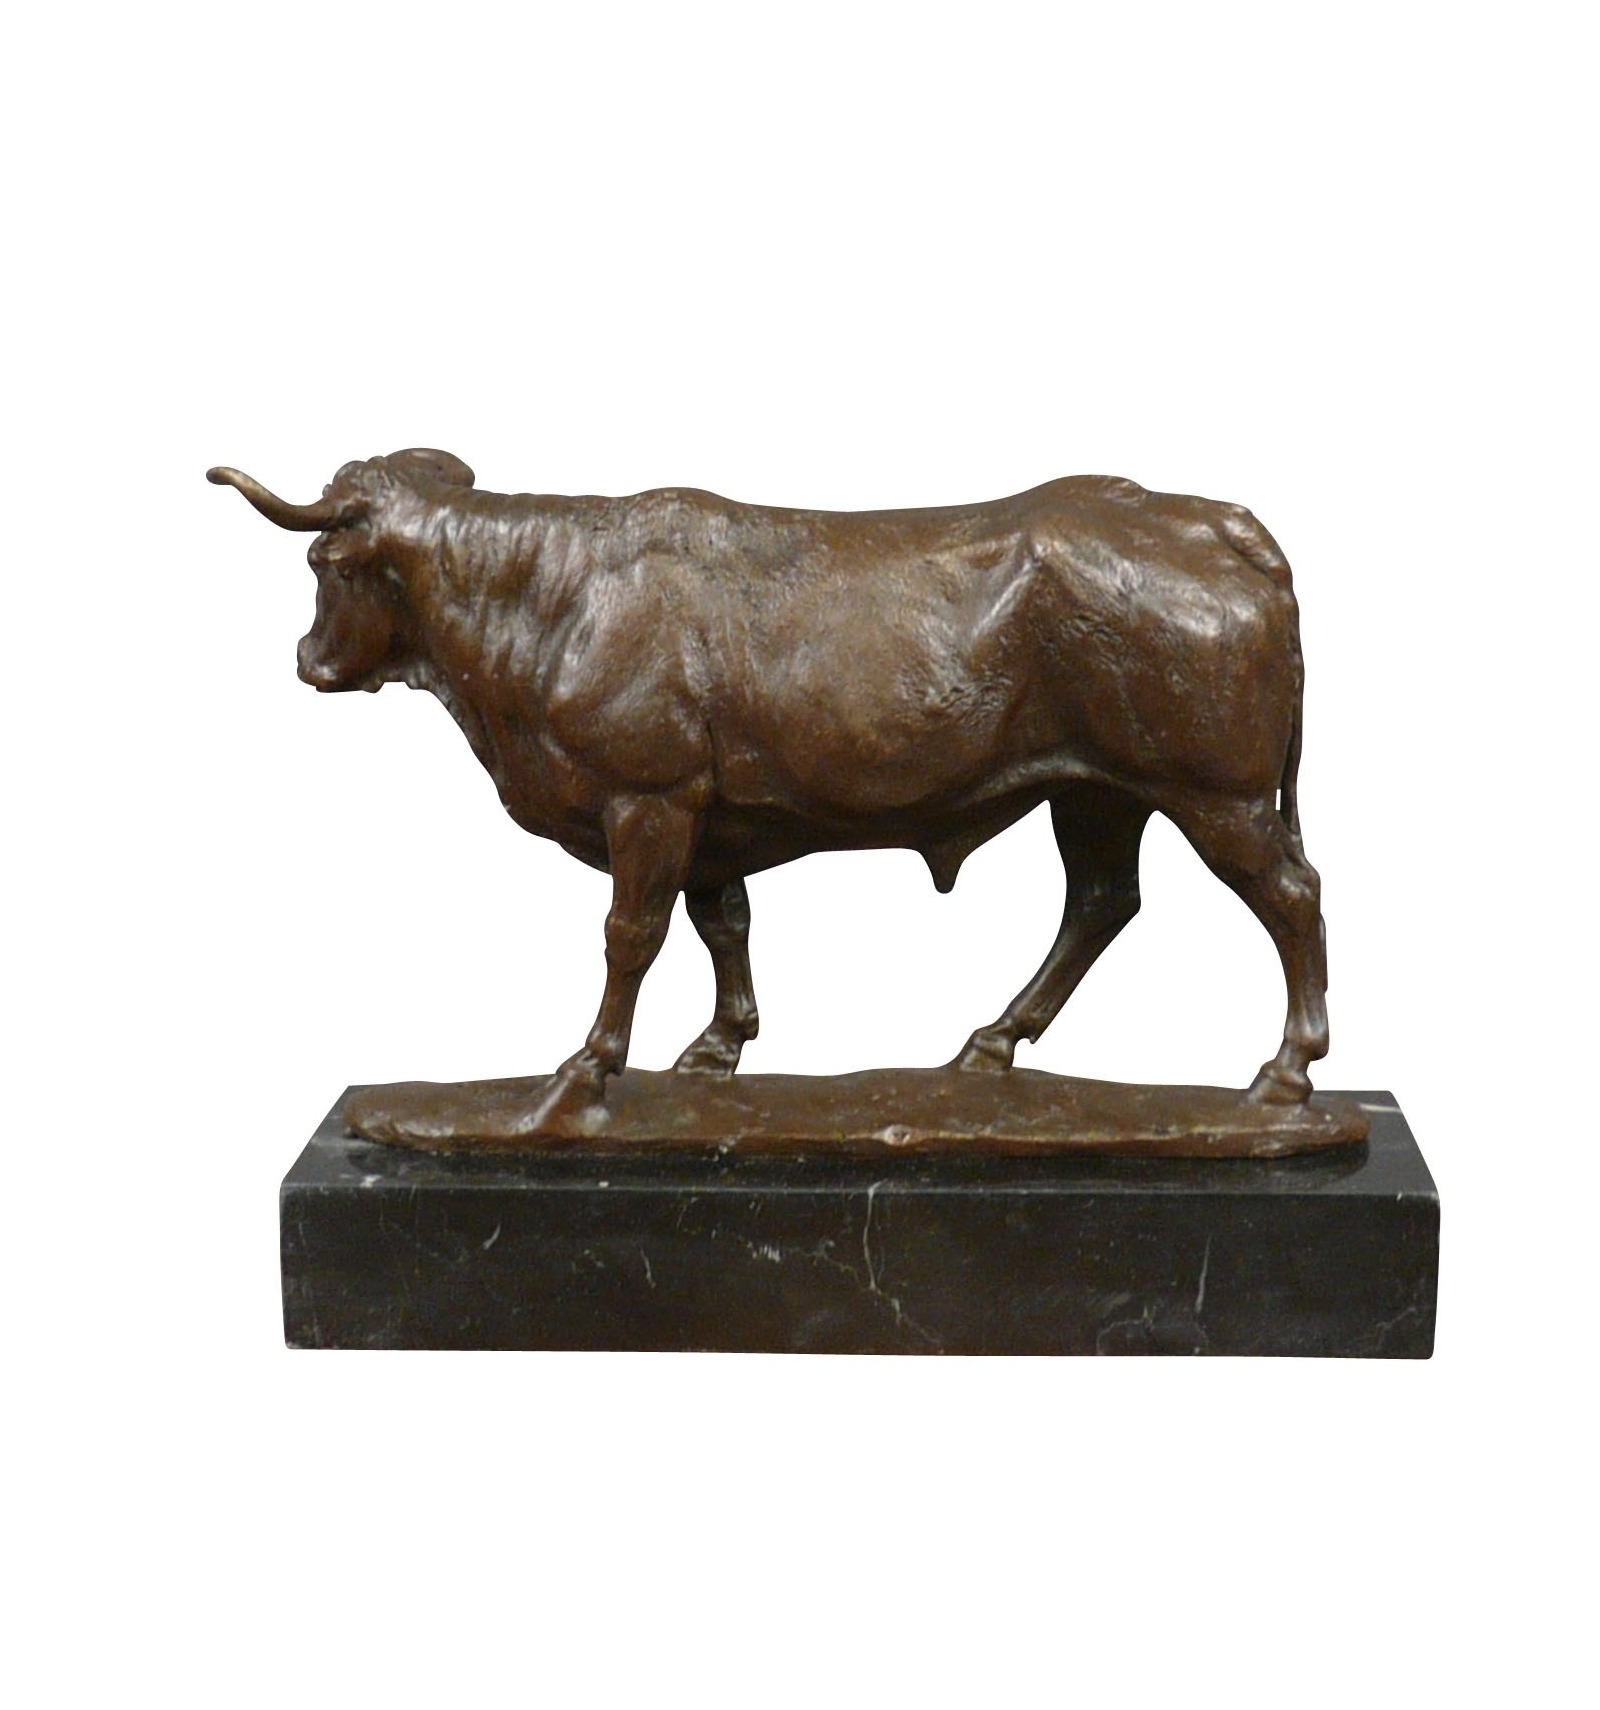 Statue In Bronze Of A Bull Sculptures And Art Deco Furniture